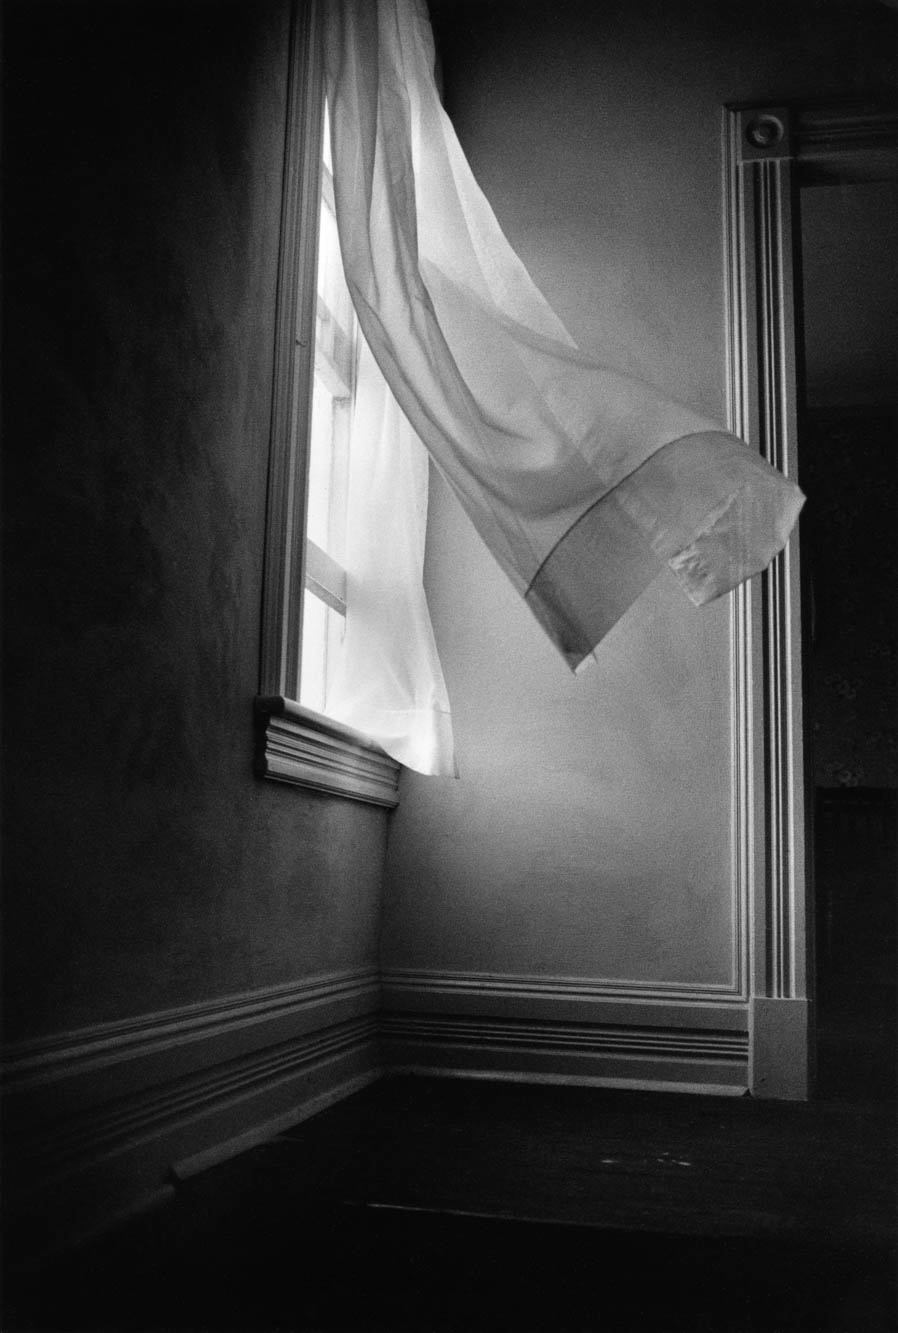 Copy of Breezy Curtains (Vermont), 1978